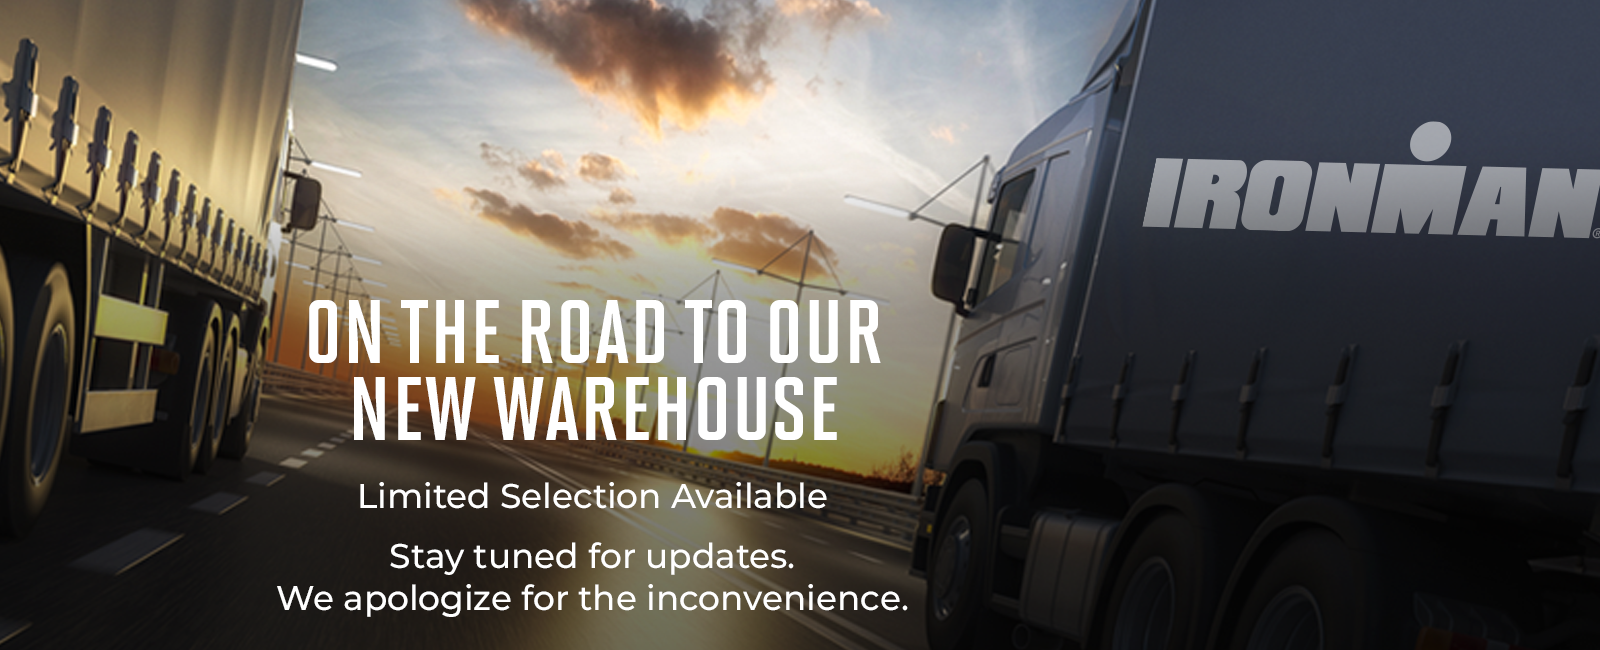 On the Road to our New Warehouse - Limited Selection Available